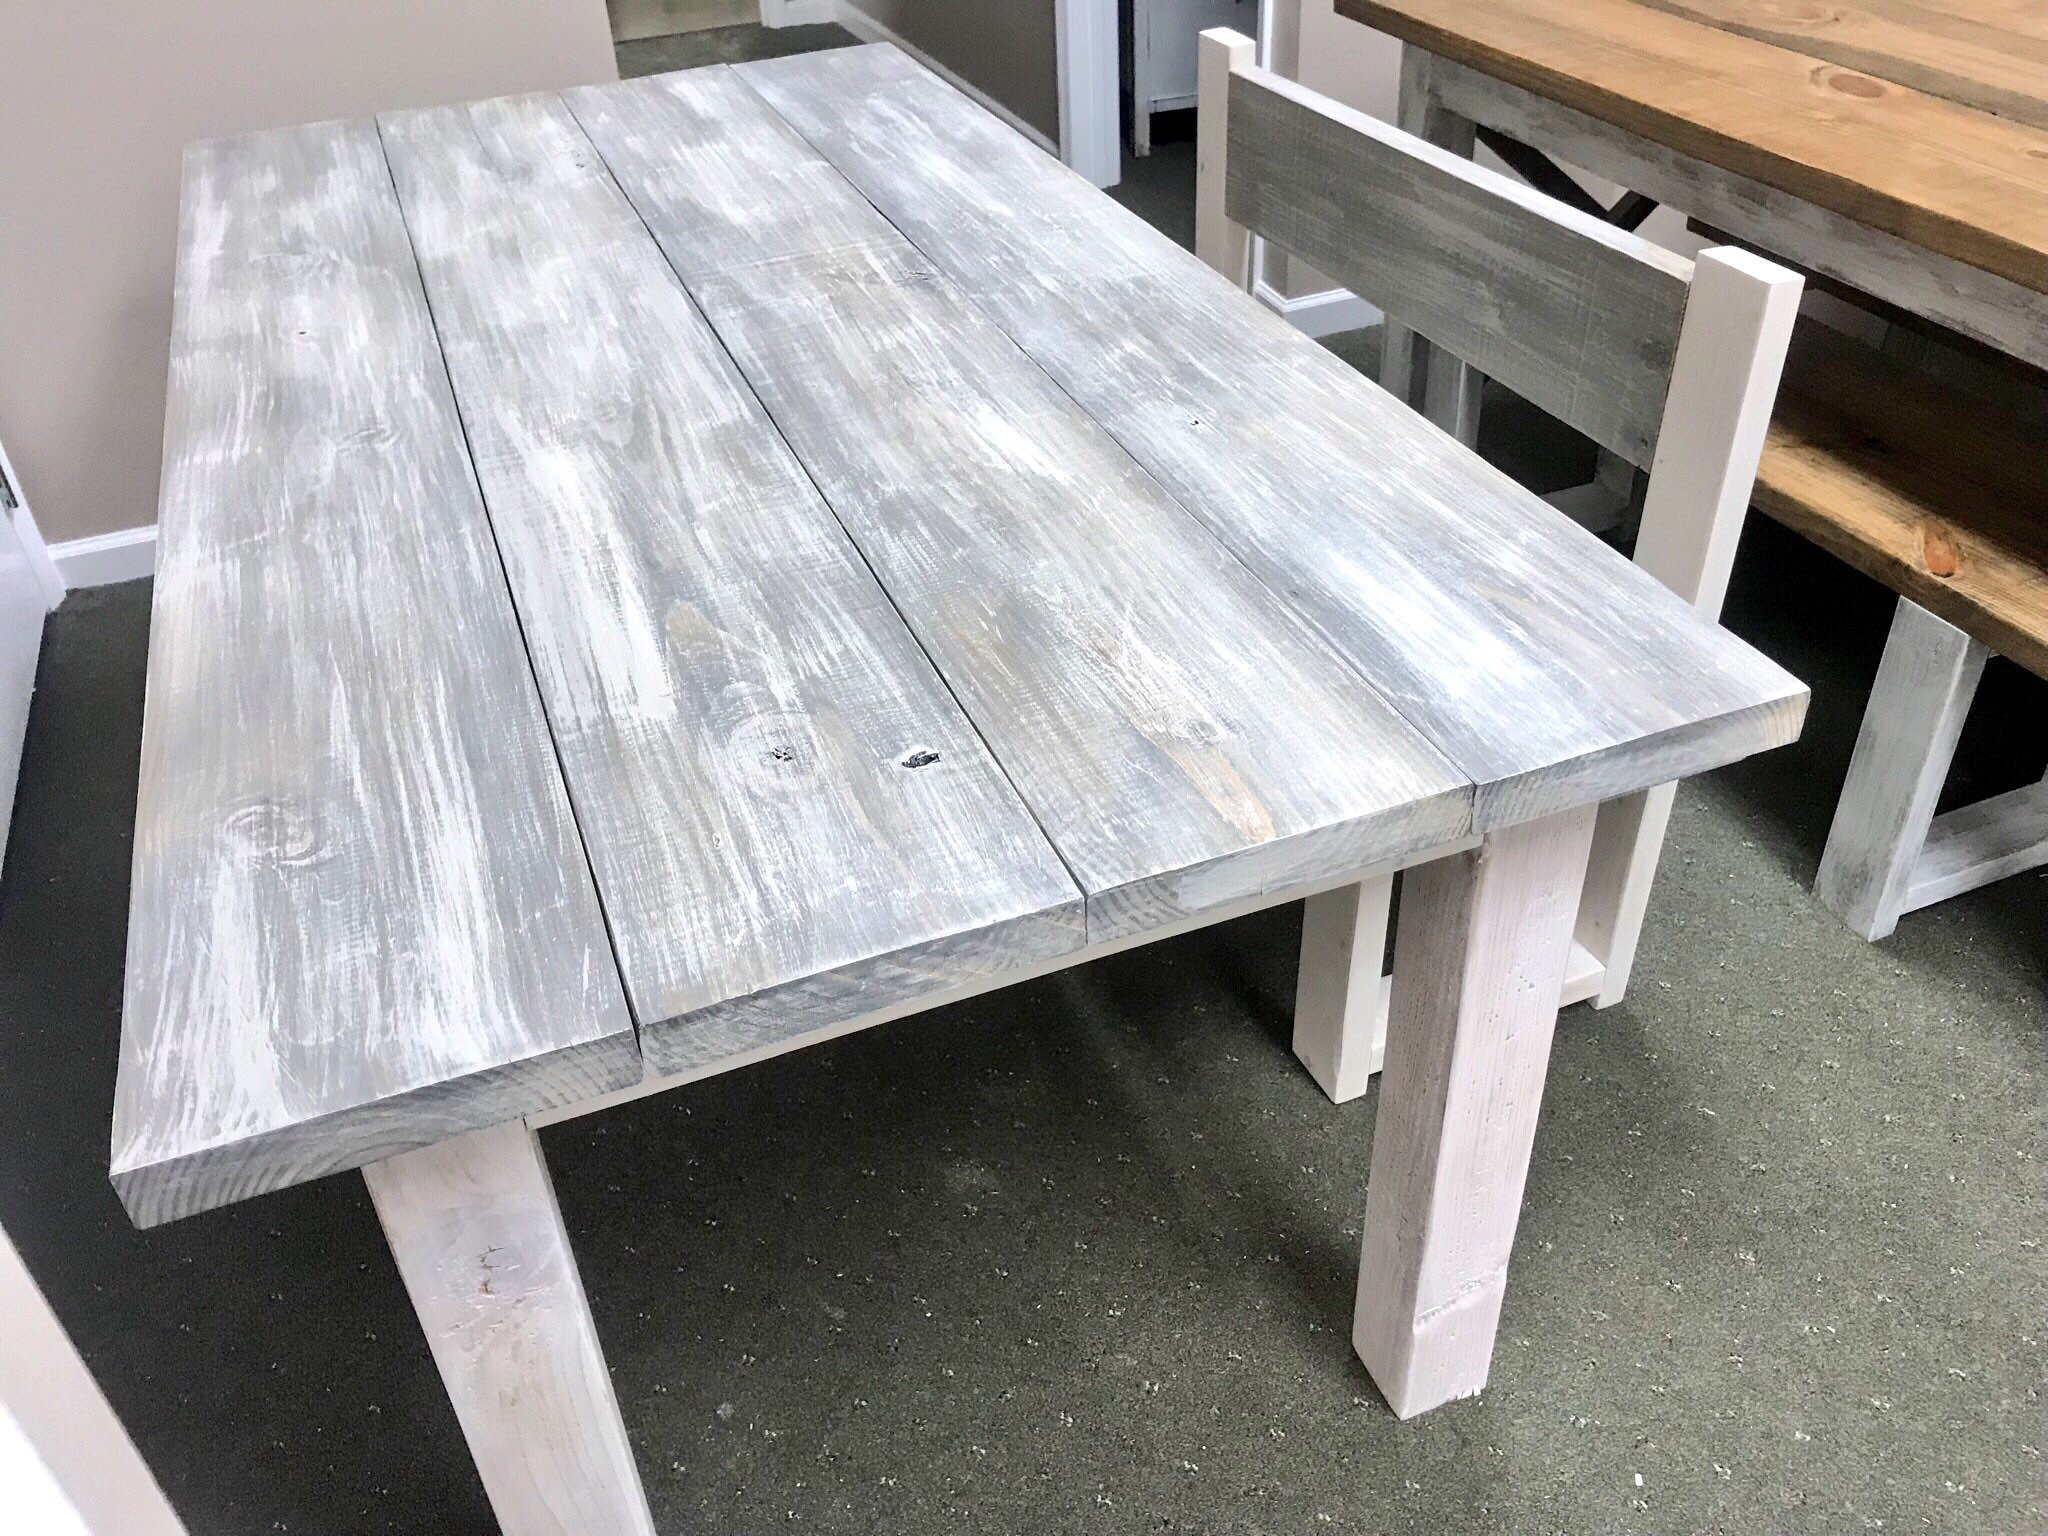 White Wash Farmhouse Table With Bench With Back Rustic